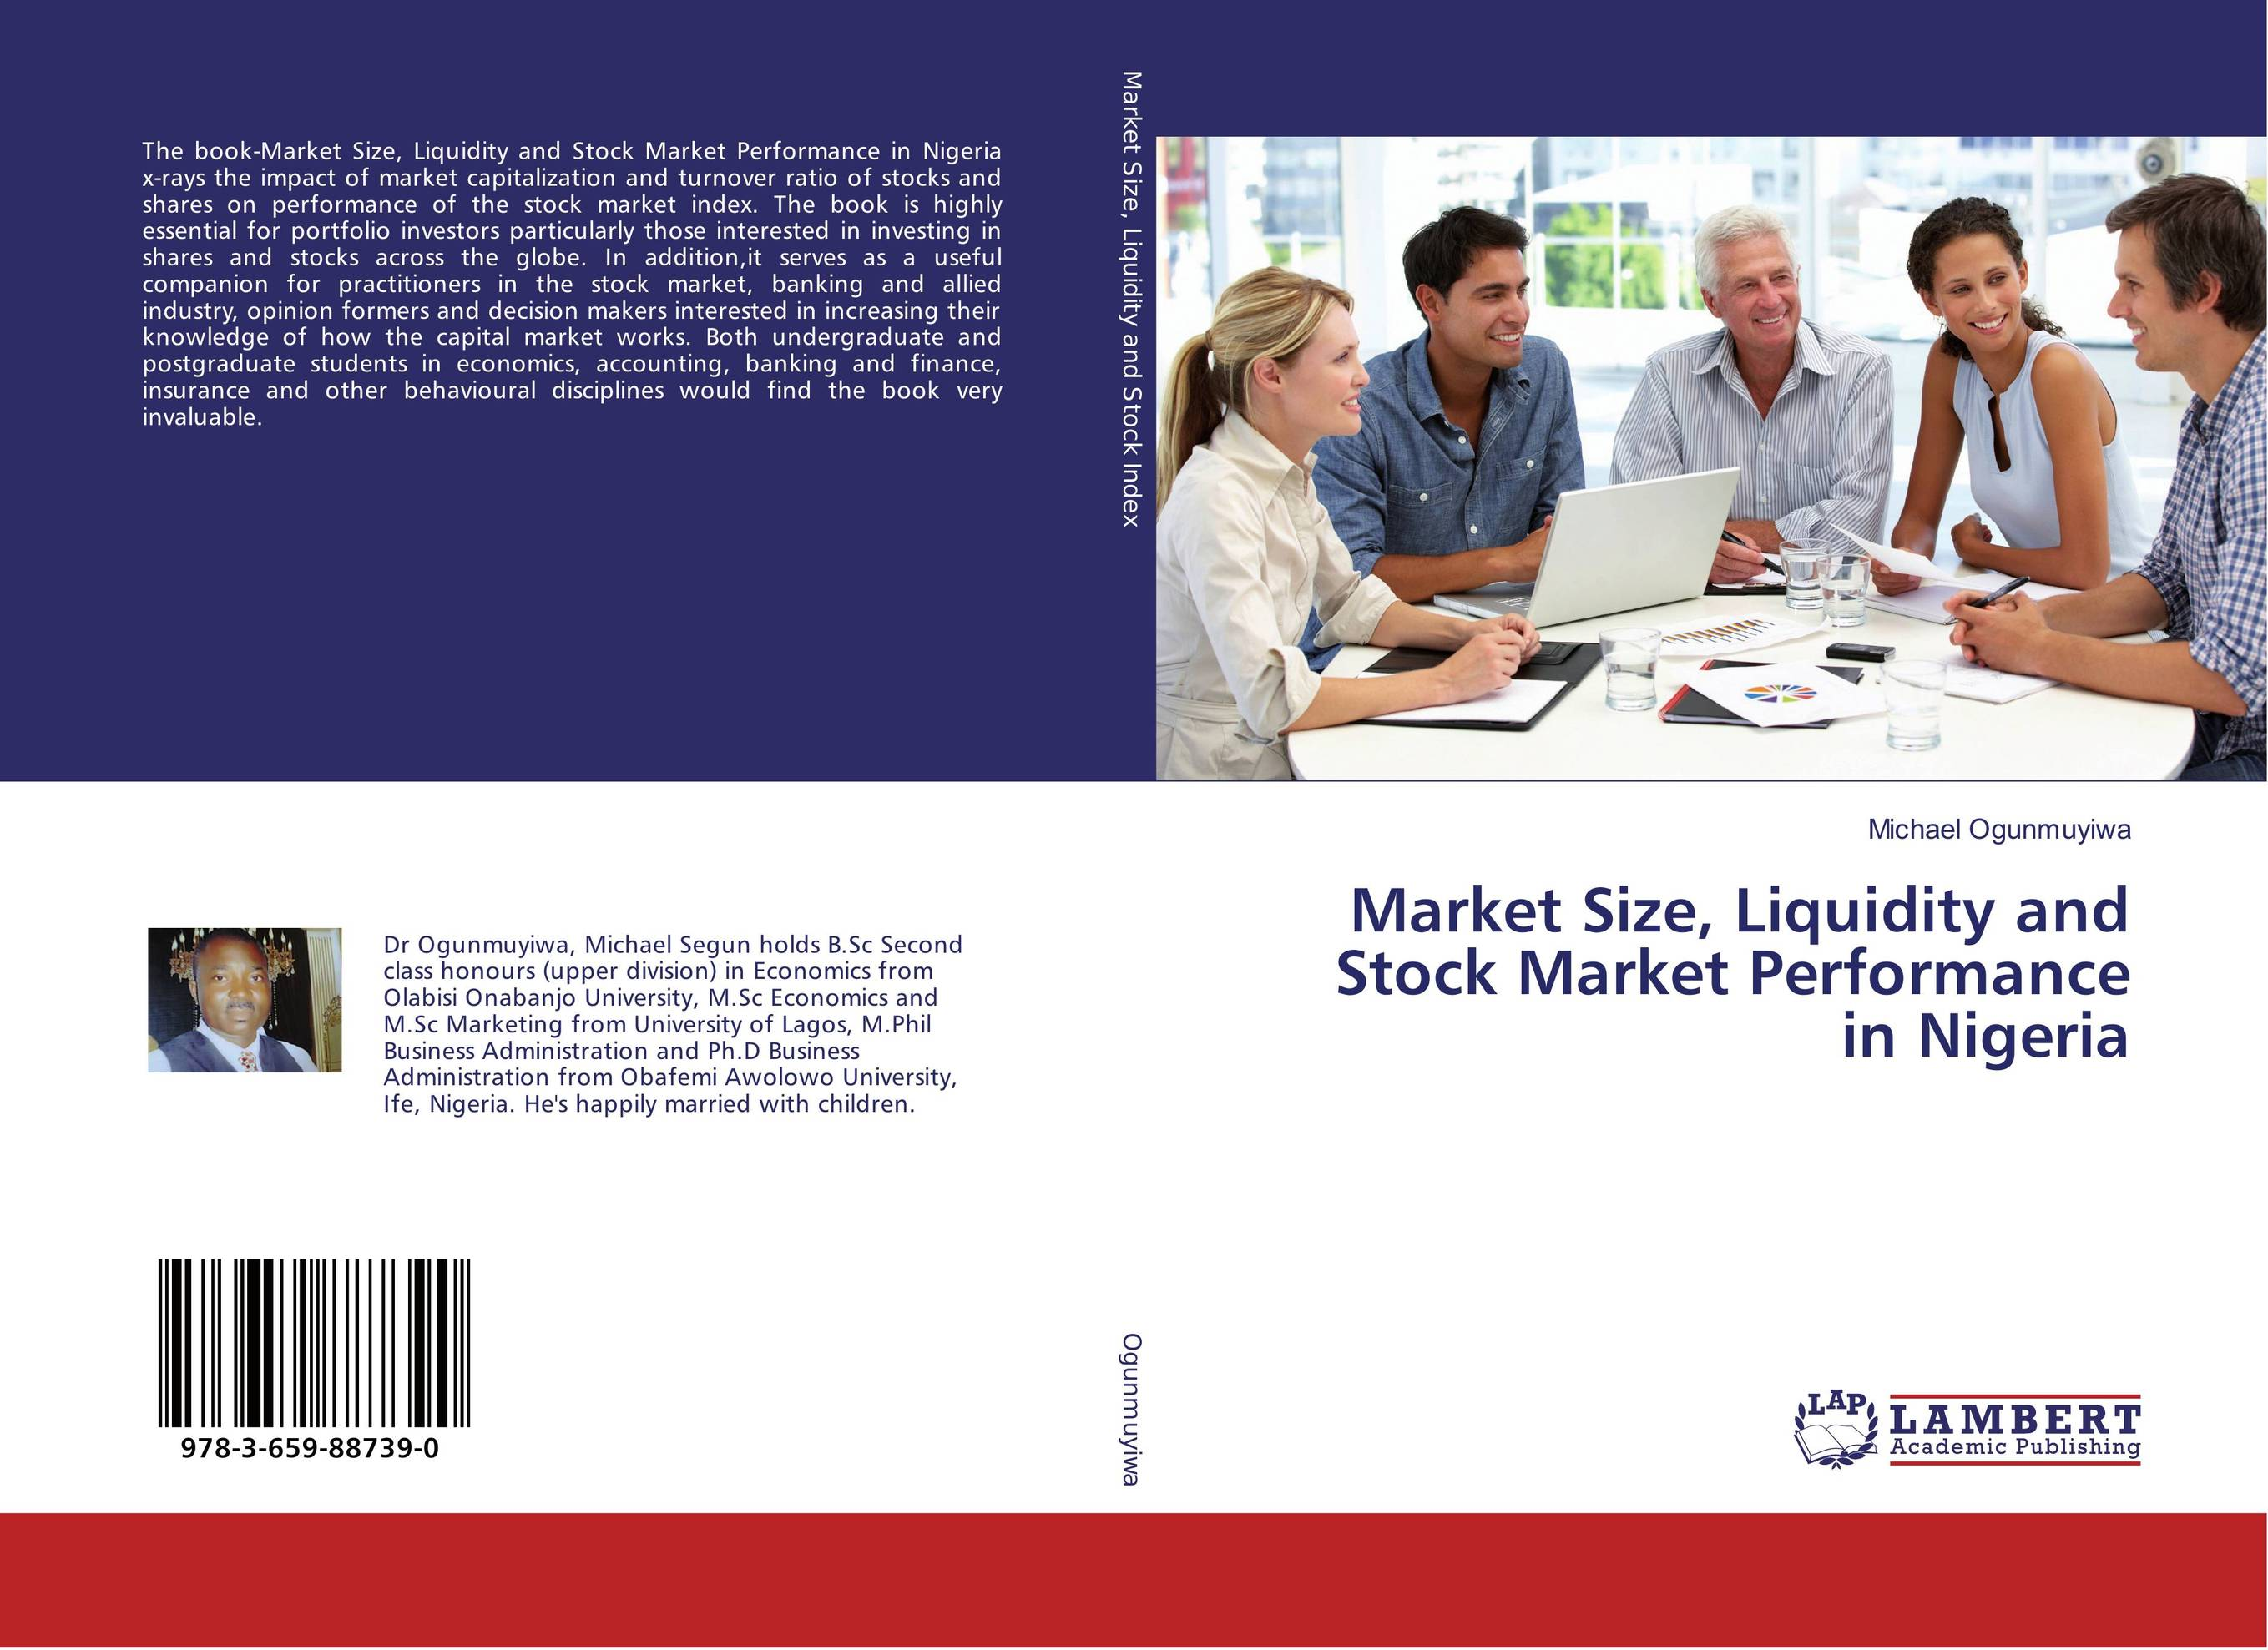 Market Size, Liquidity and Stock Market Performance in Nigeria impact of stock market performance indices on economic growth